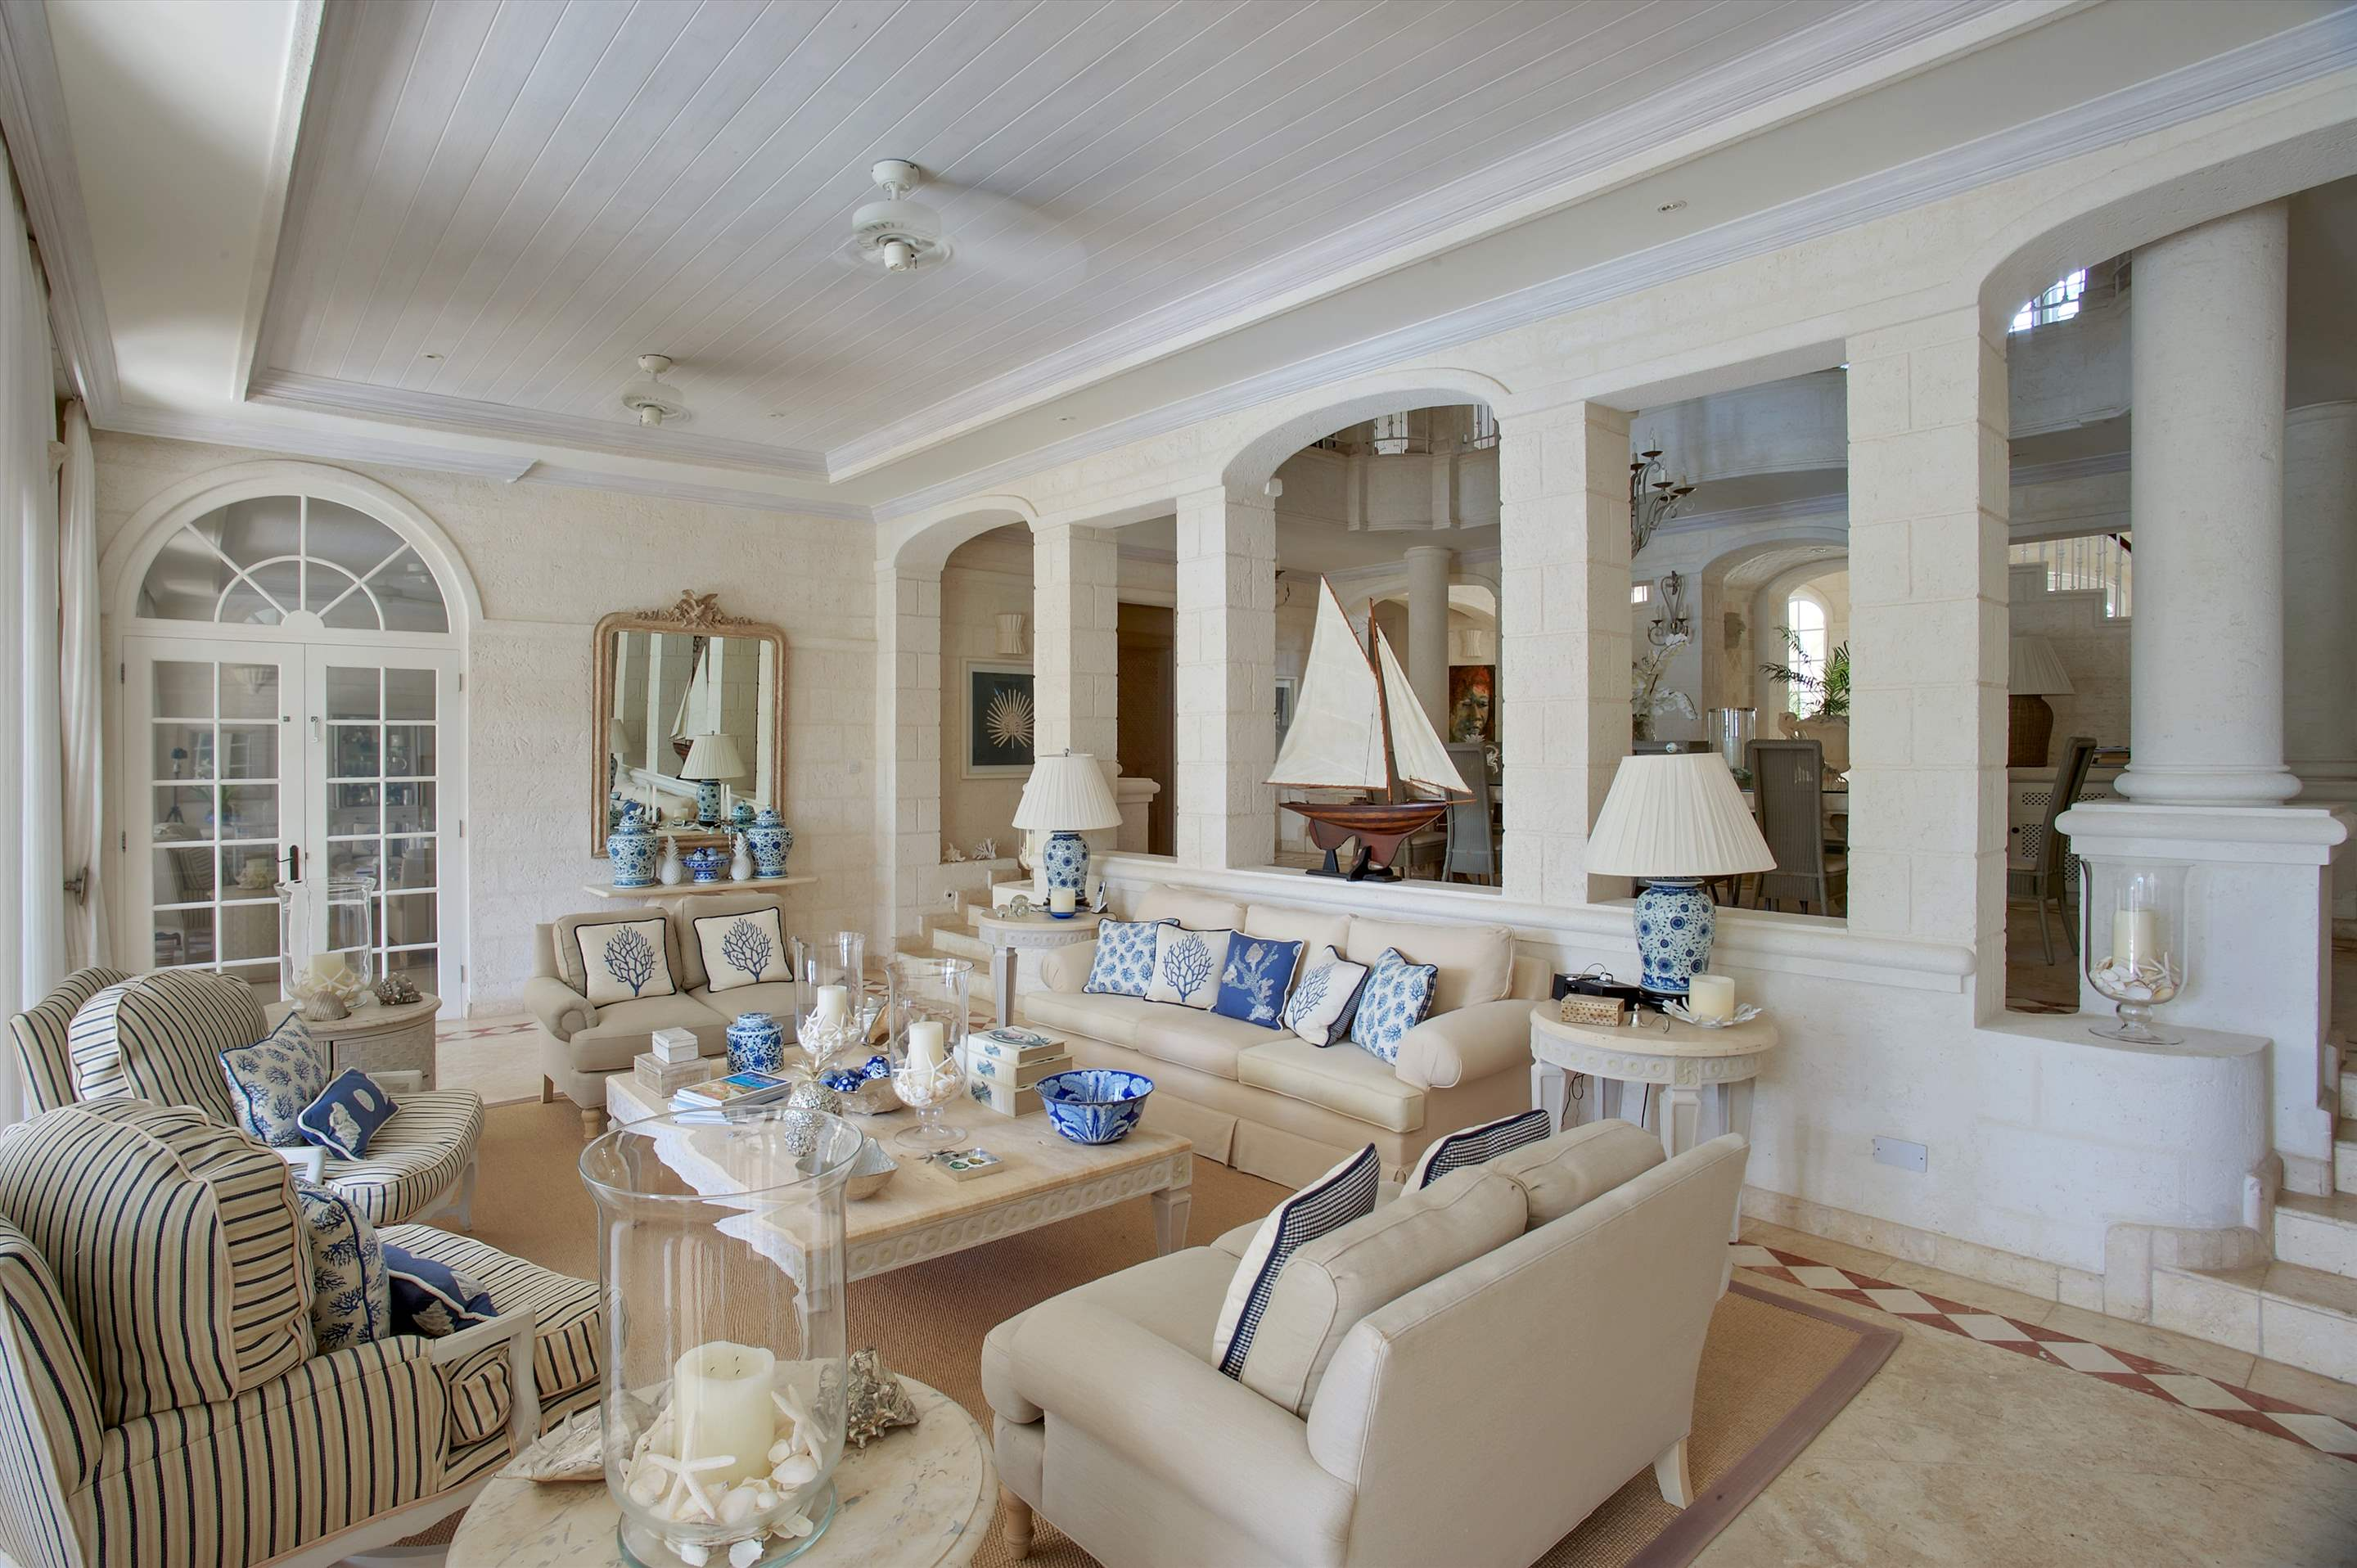 Plantation House, Royal Westmoreland, 6 bedroom, 6 bedroom villa in St. James & West Coast, Barbados Photo #4